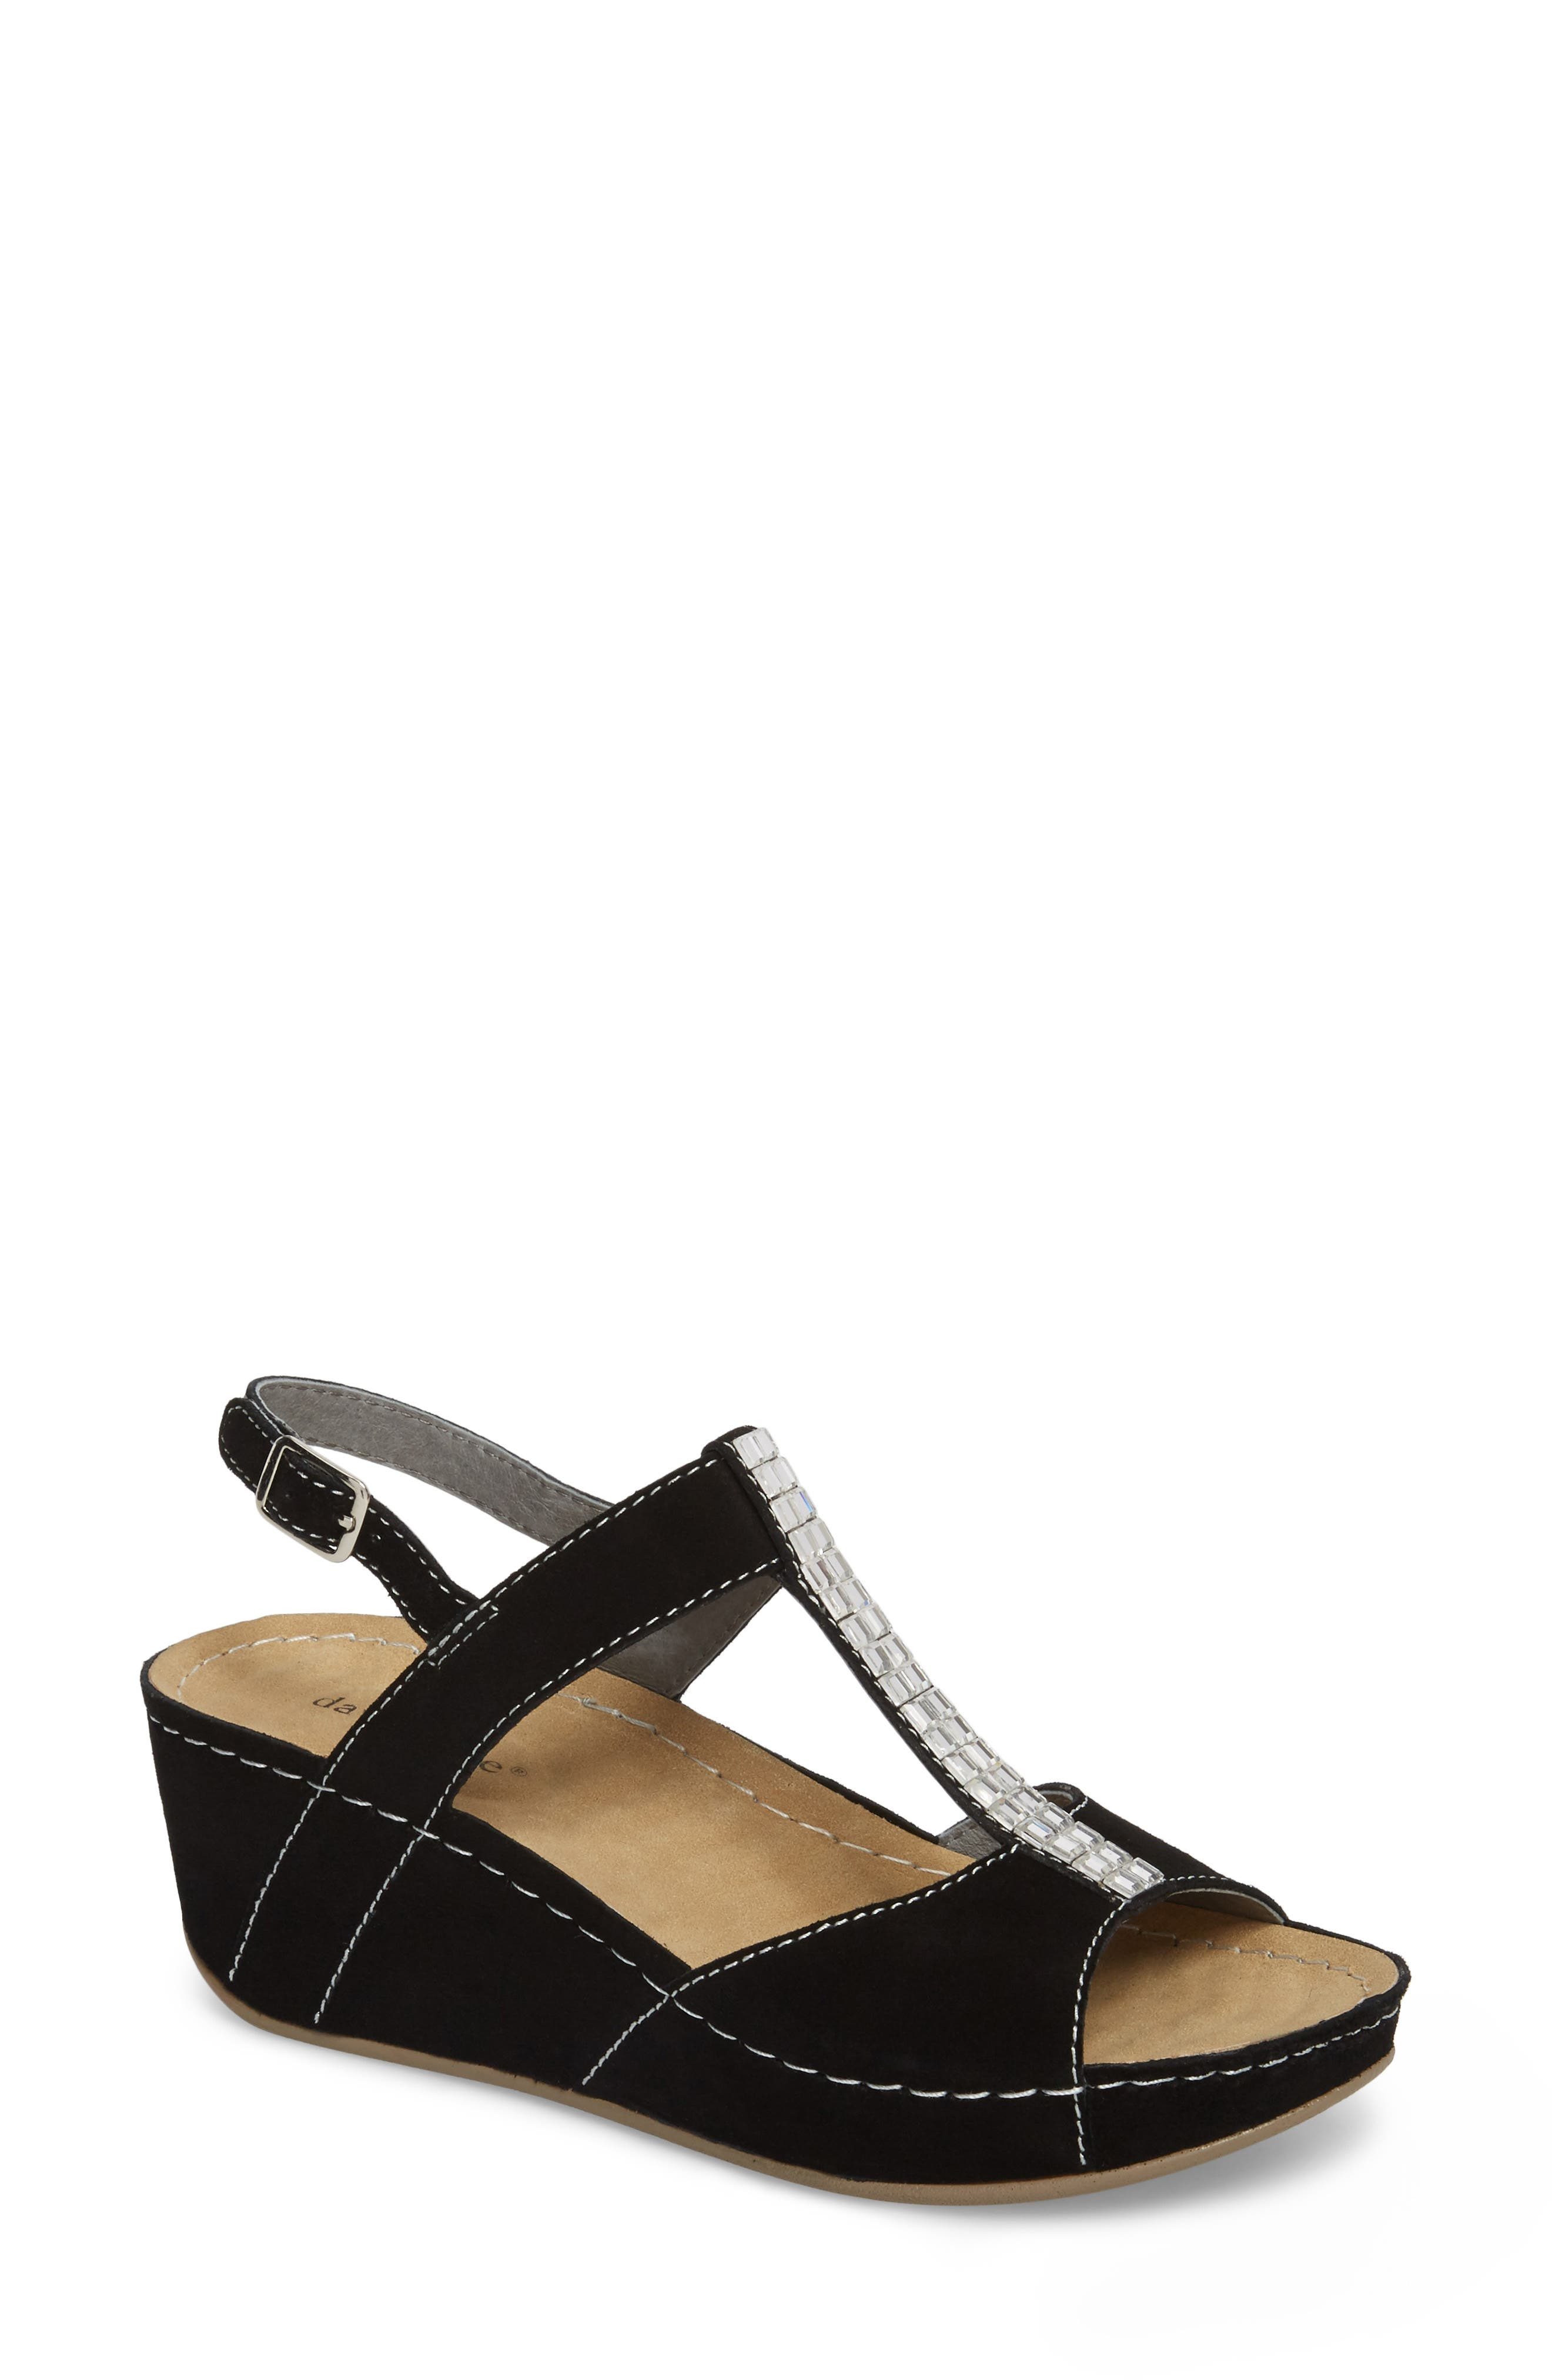 Bubbly Embellished T-Strap Wedge Sandal,                             Main thumbnail 1, color,                             BLACK SUEDE